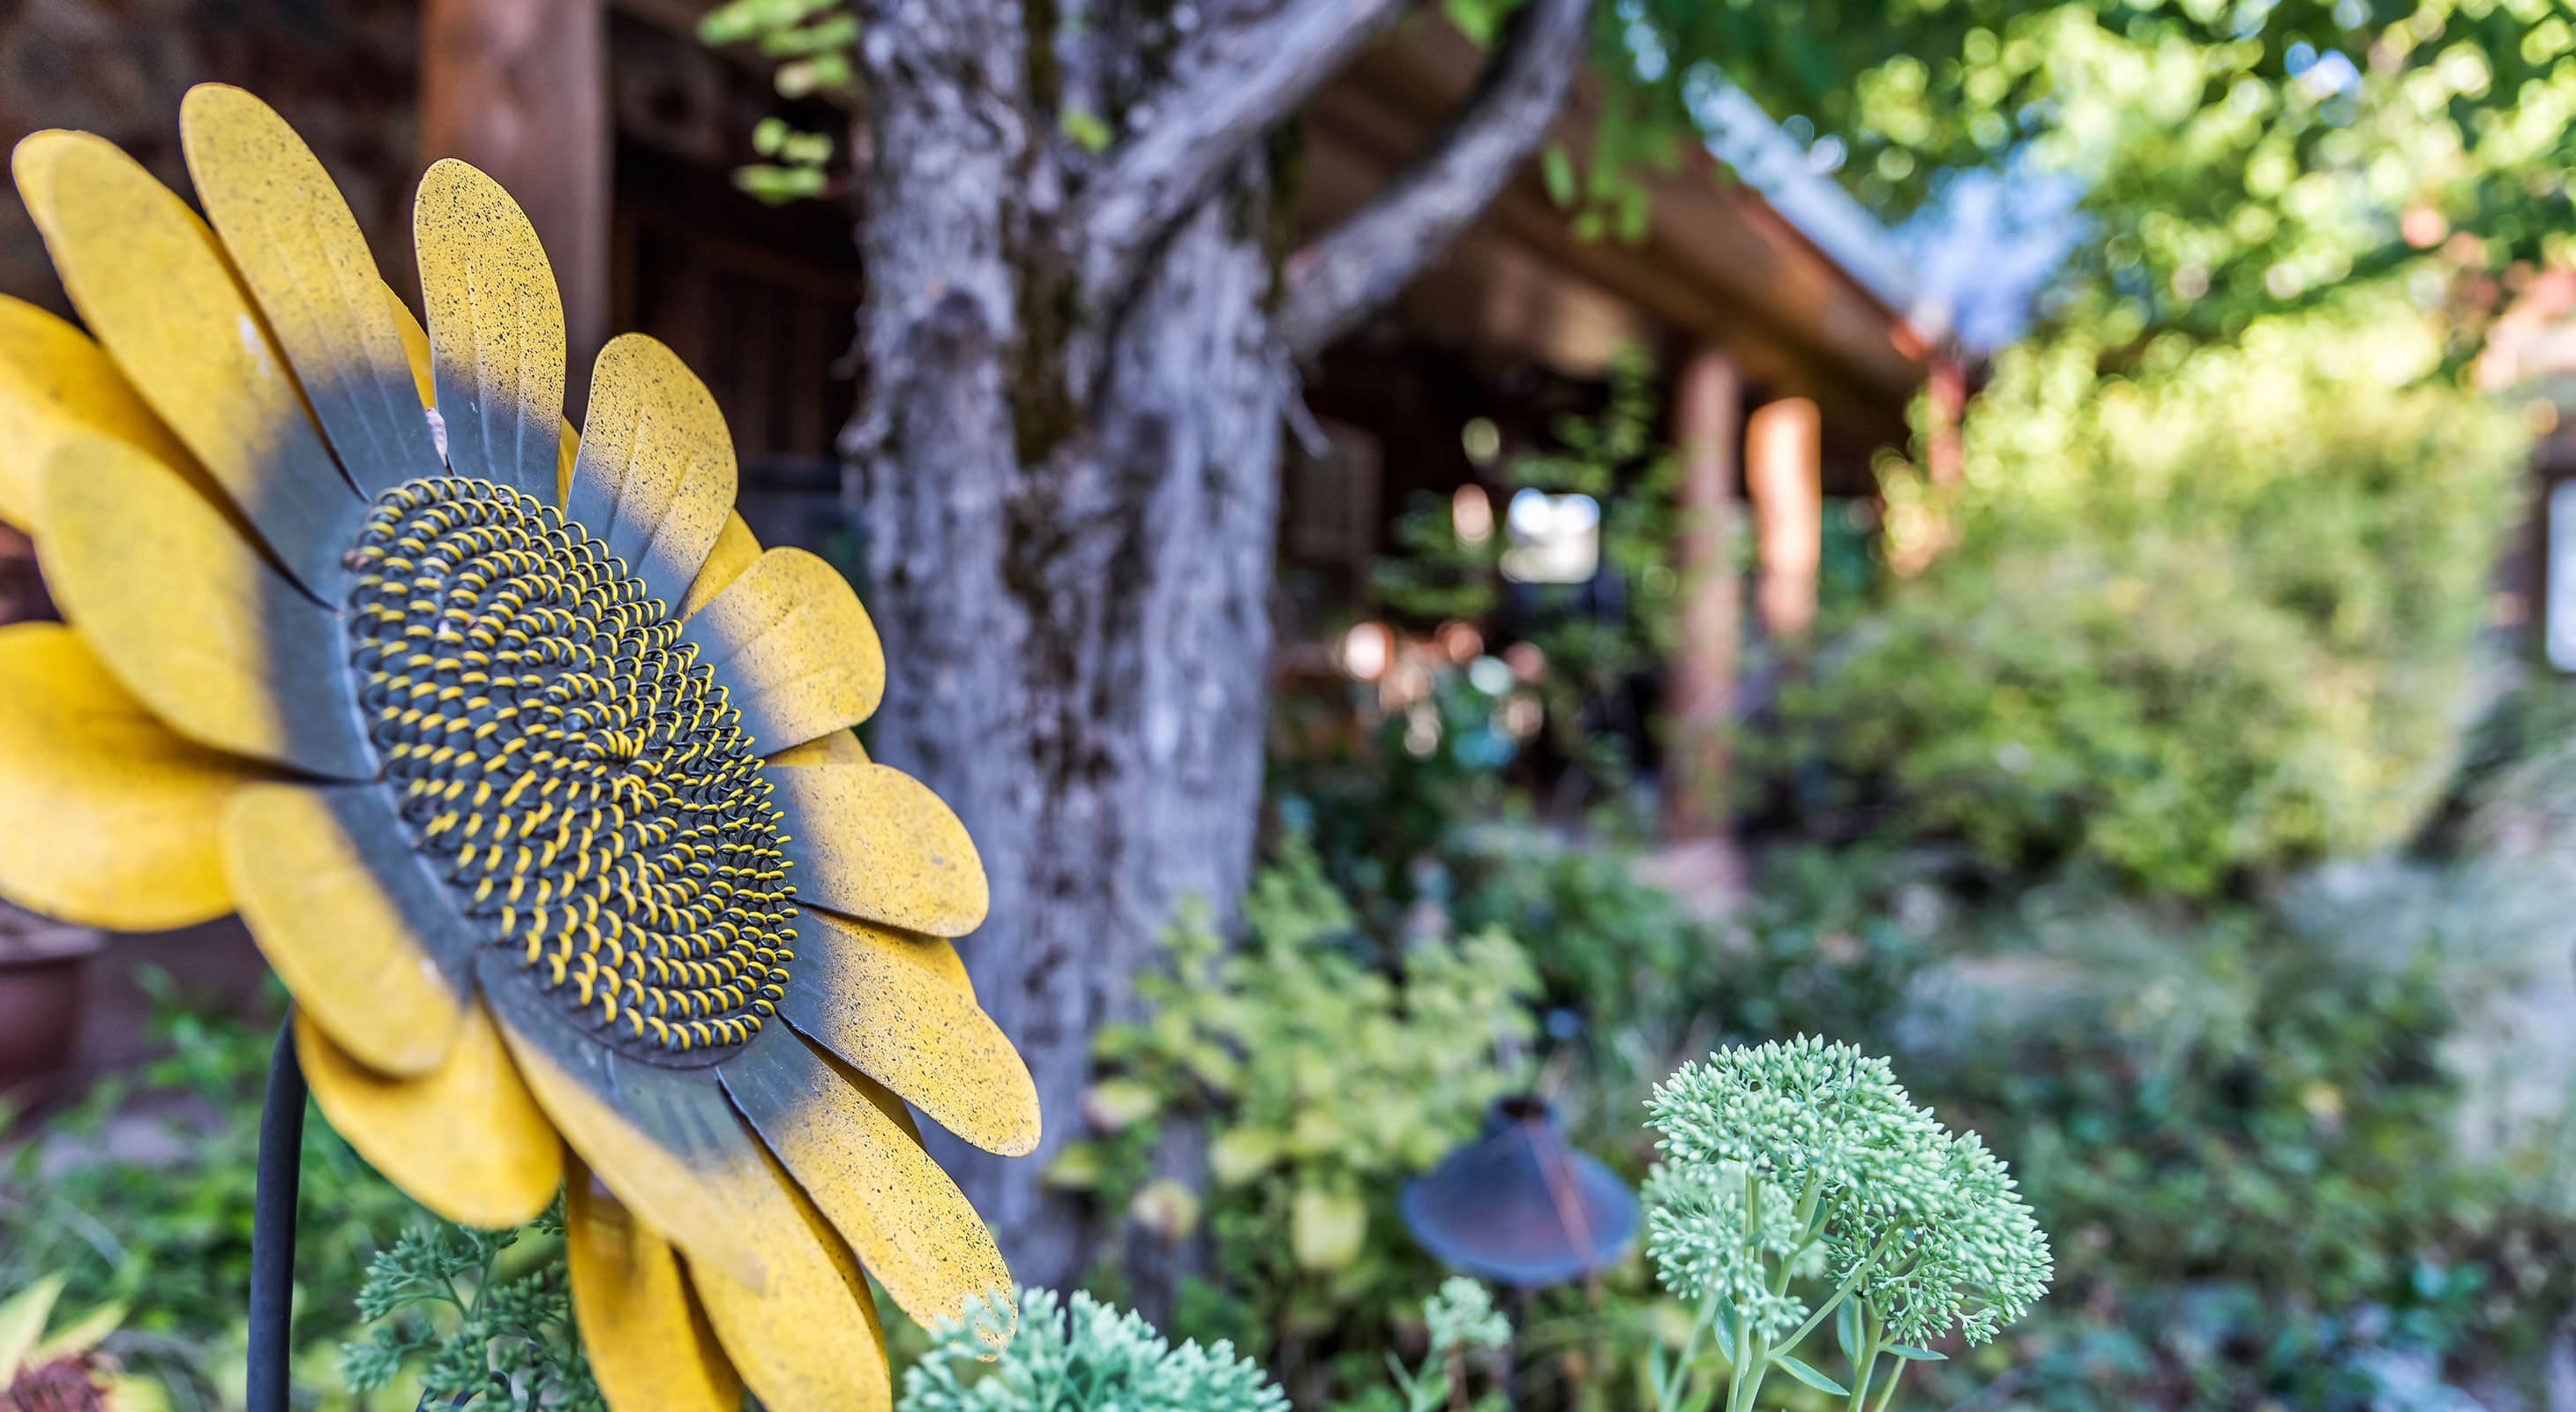 Metal sunflower decoration surrounded by foliage outdoors